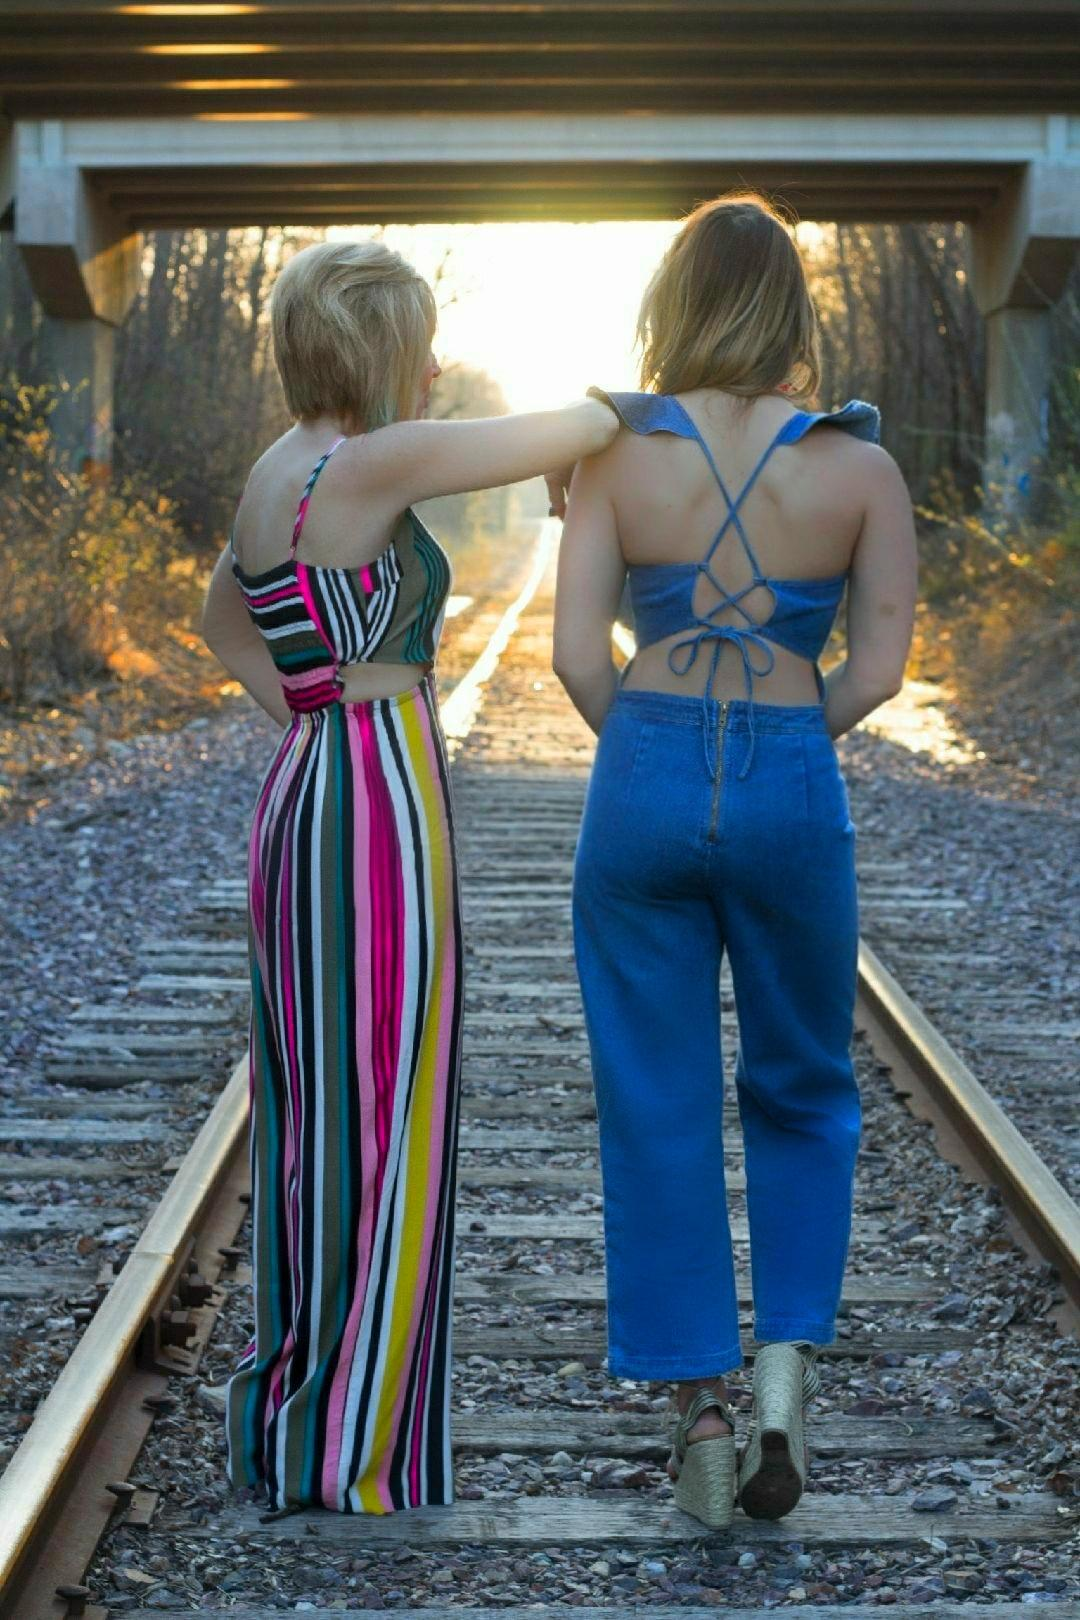 Colleen and I jumpsuits on the tracks